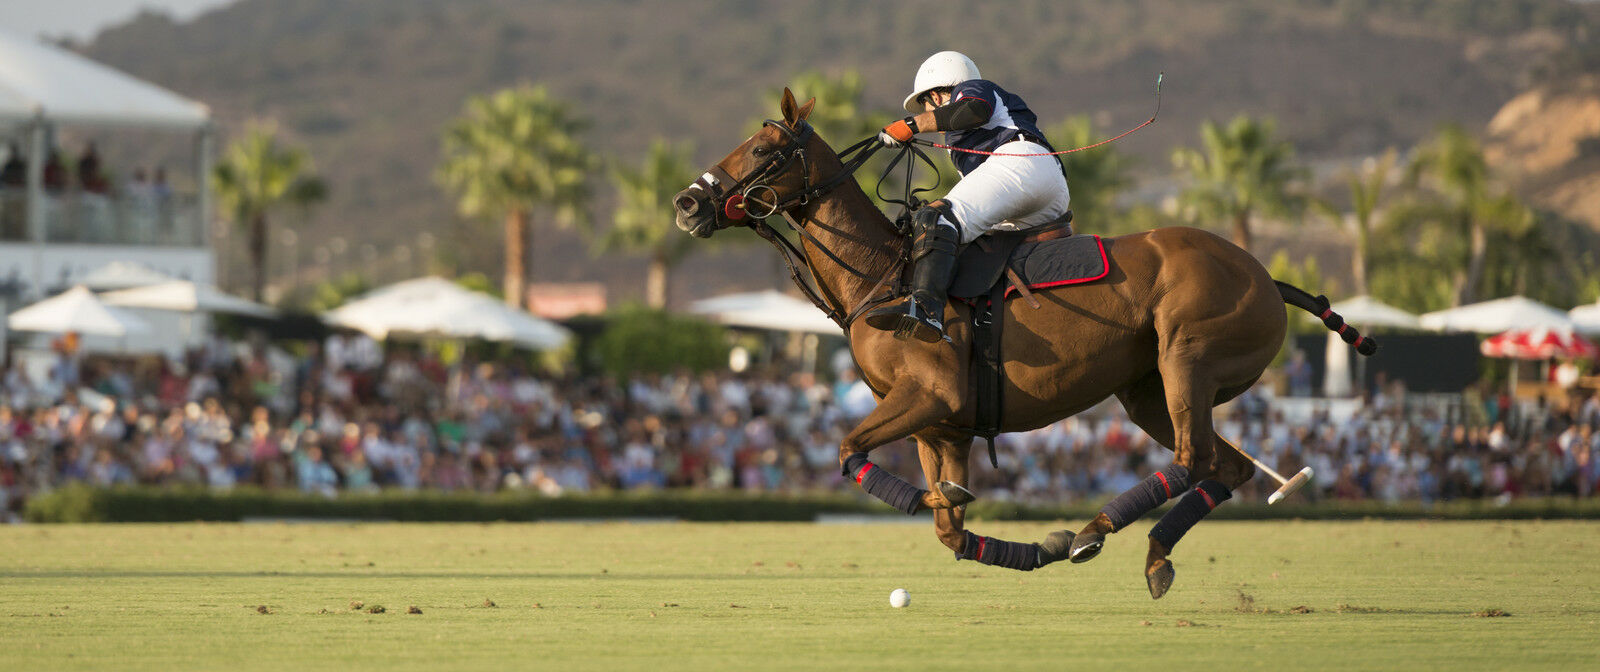 The Victory Cup Polo Match